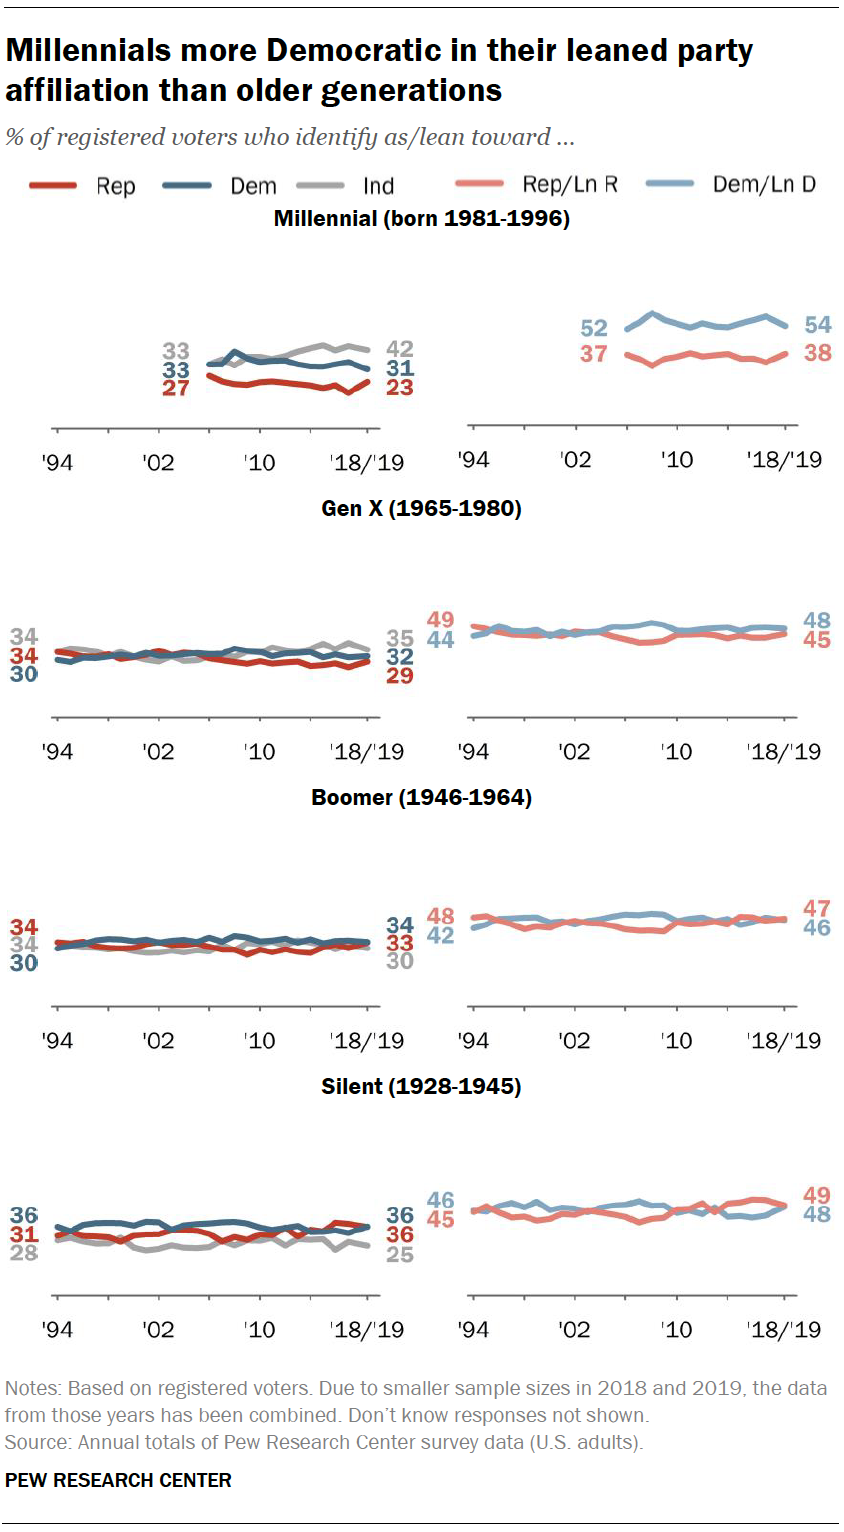 Millennials more Democratic in their leaned party affiliation than older generations